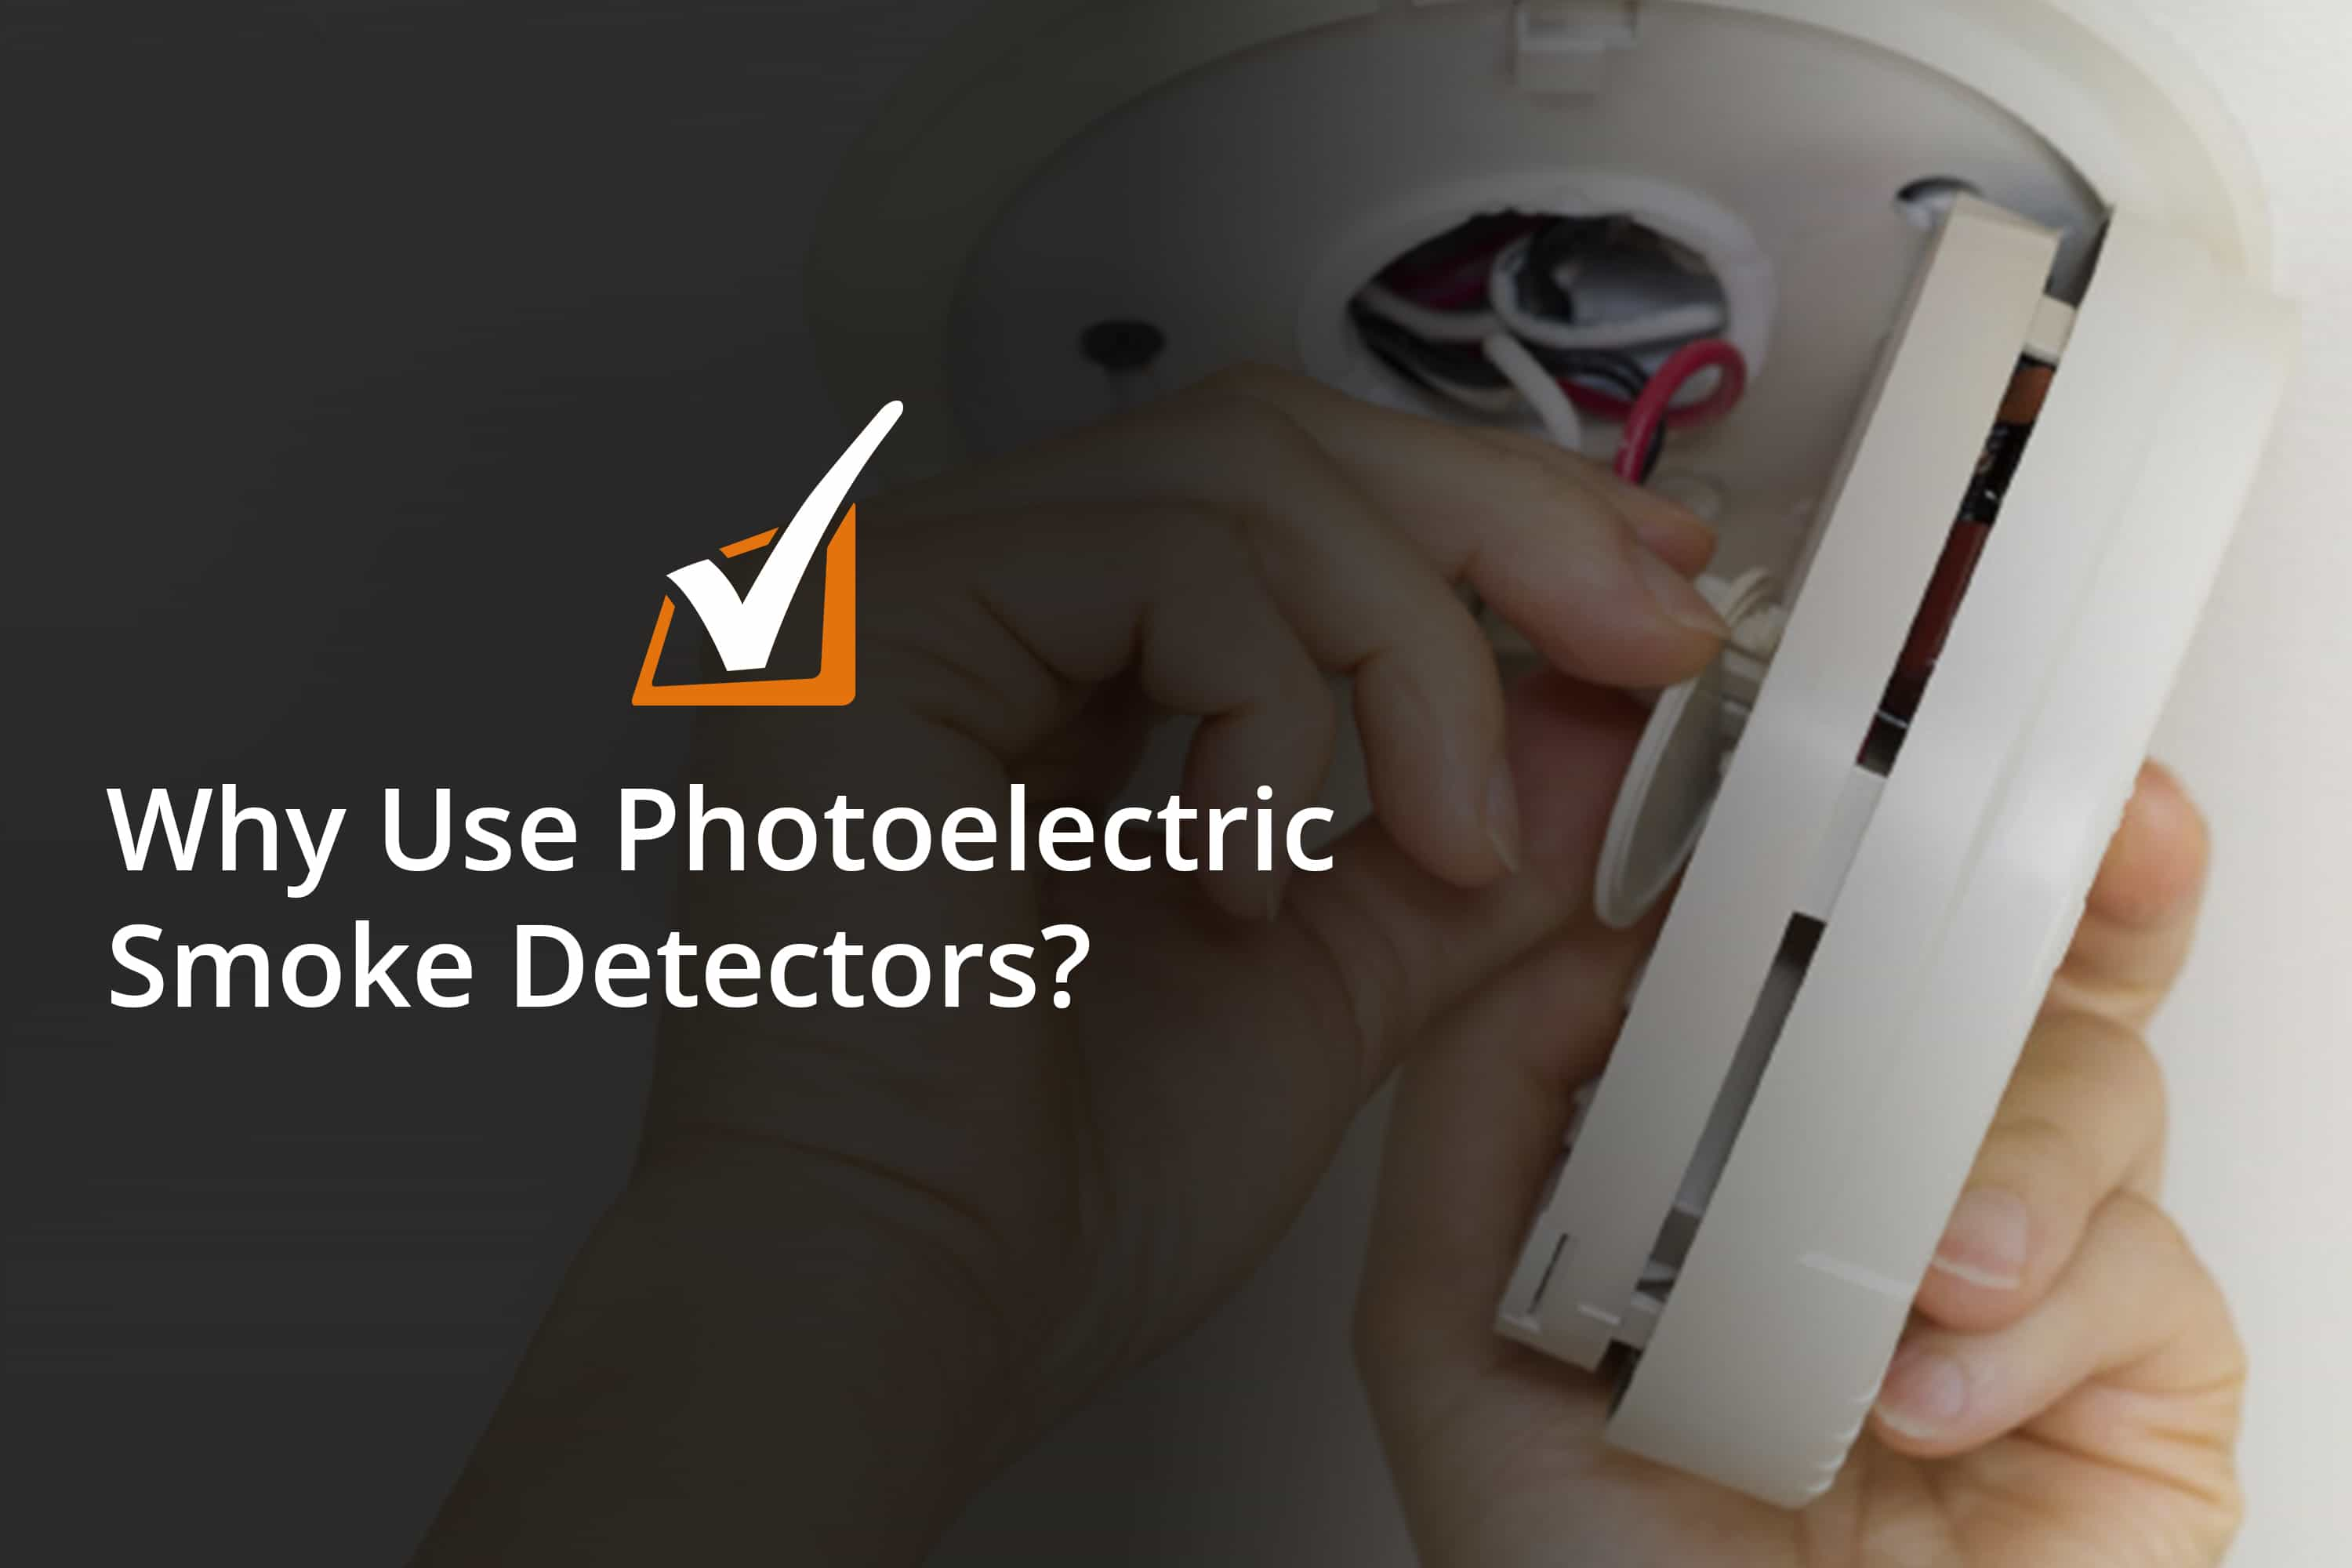 SHS_Why Use Photoelectric Smoke Detectors